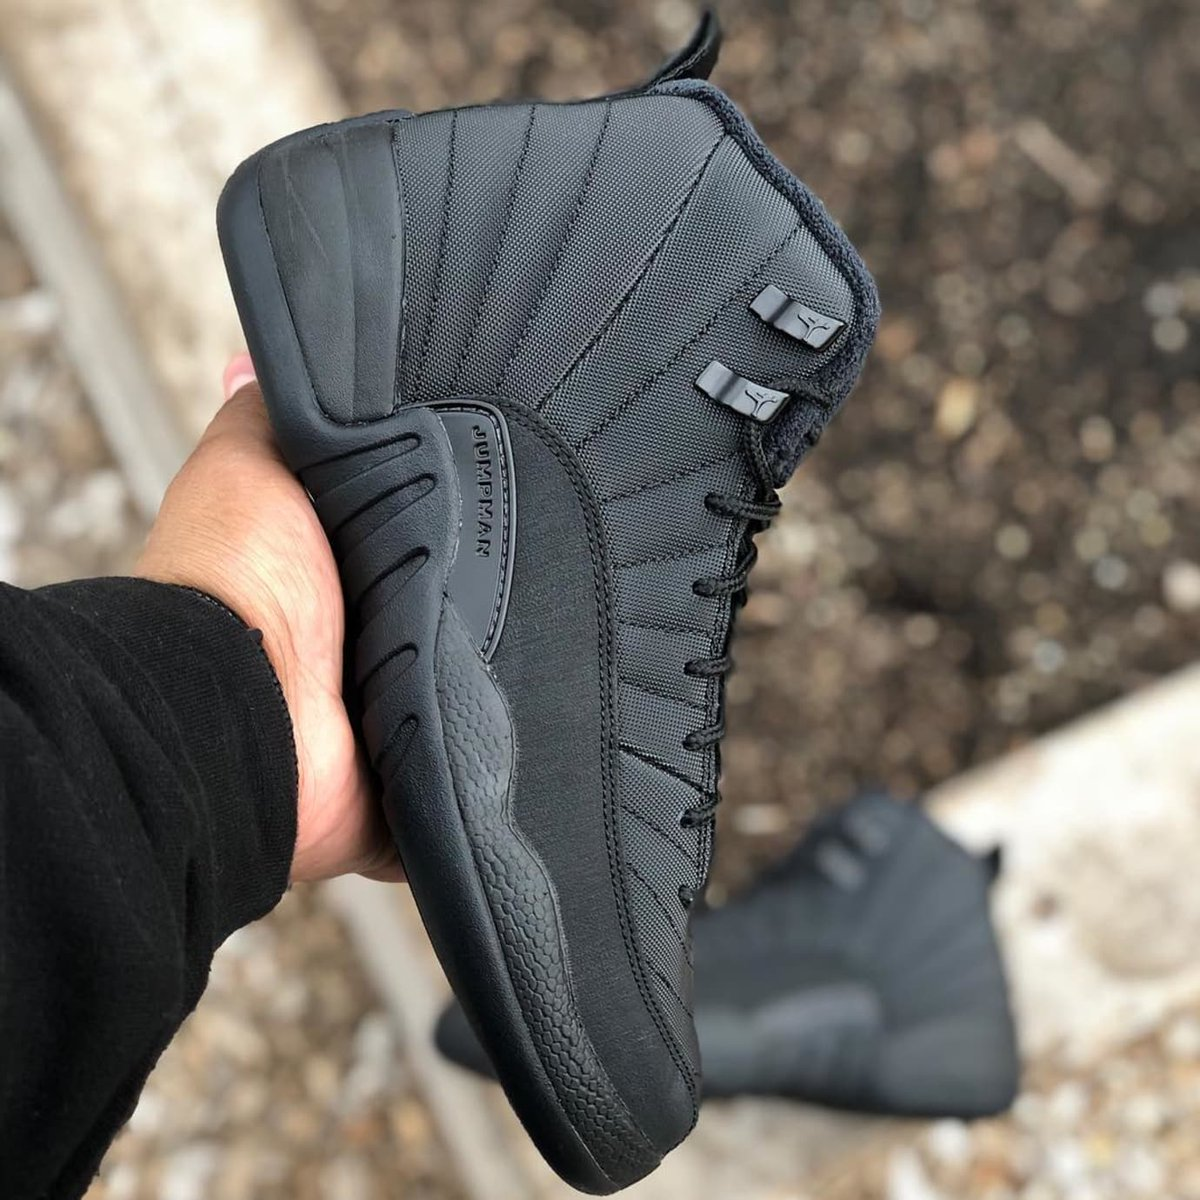 b6fa6aa1c70 The winterized Air Jordan 12 ($265) drops tomorrow in all-black featuring a  durable, water-repellant upper and an inner fleece lining to keep you warm  this ...